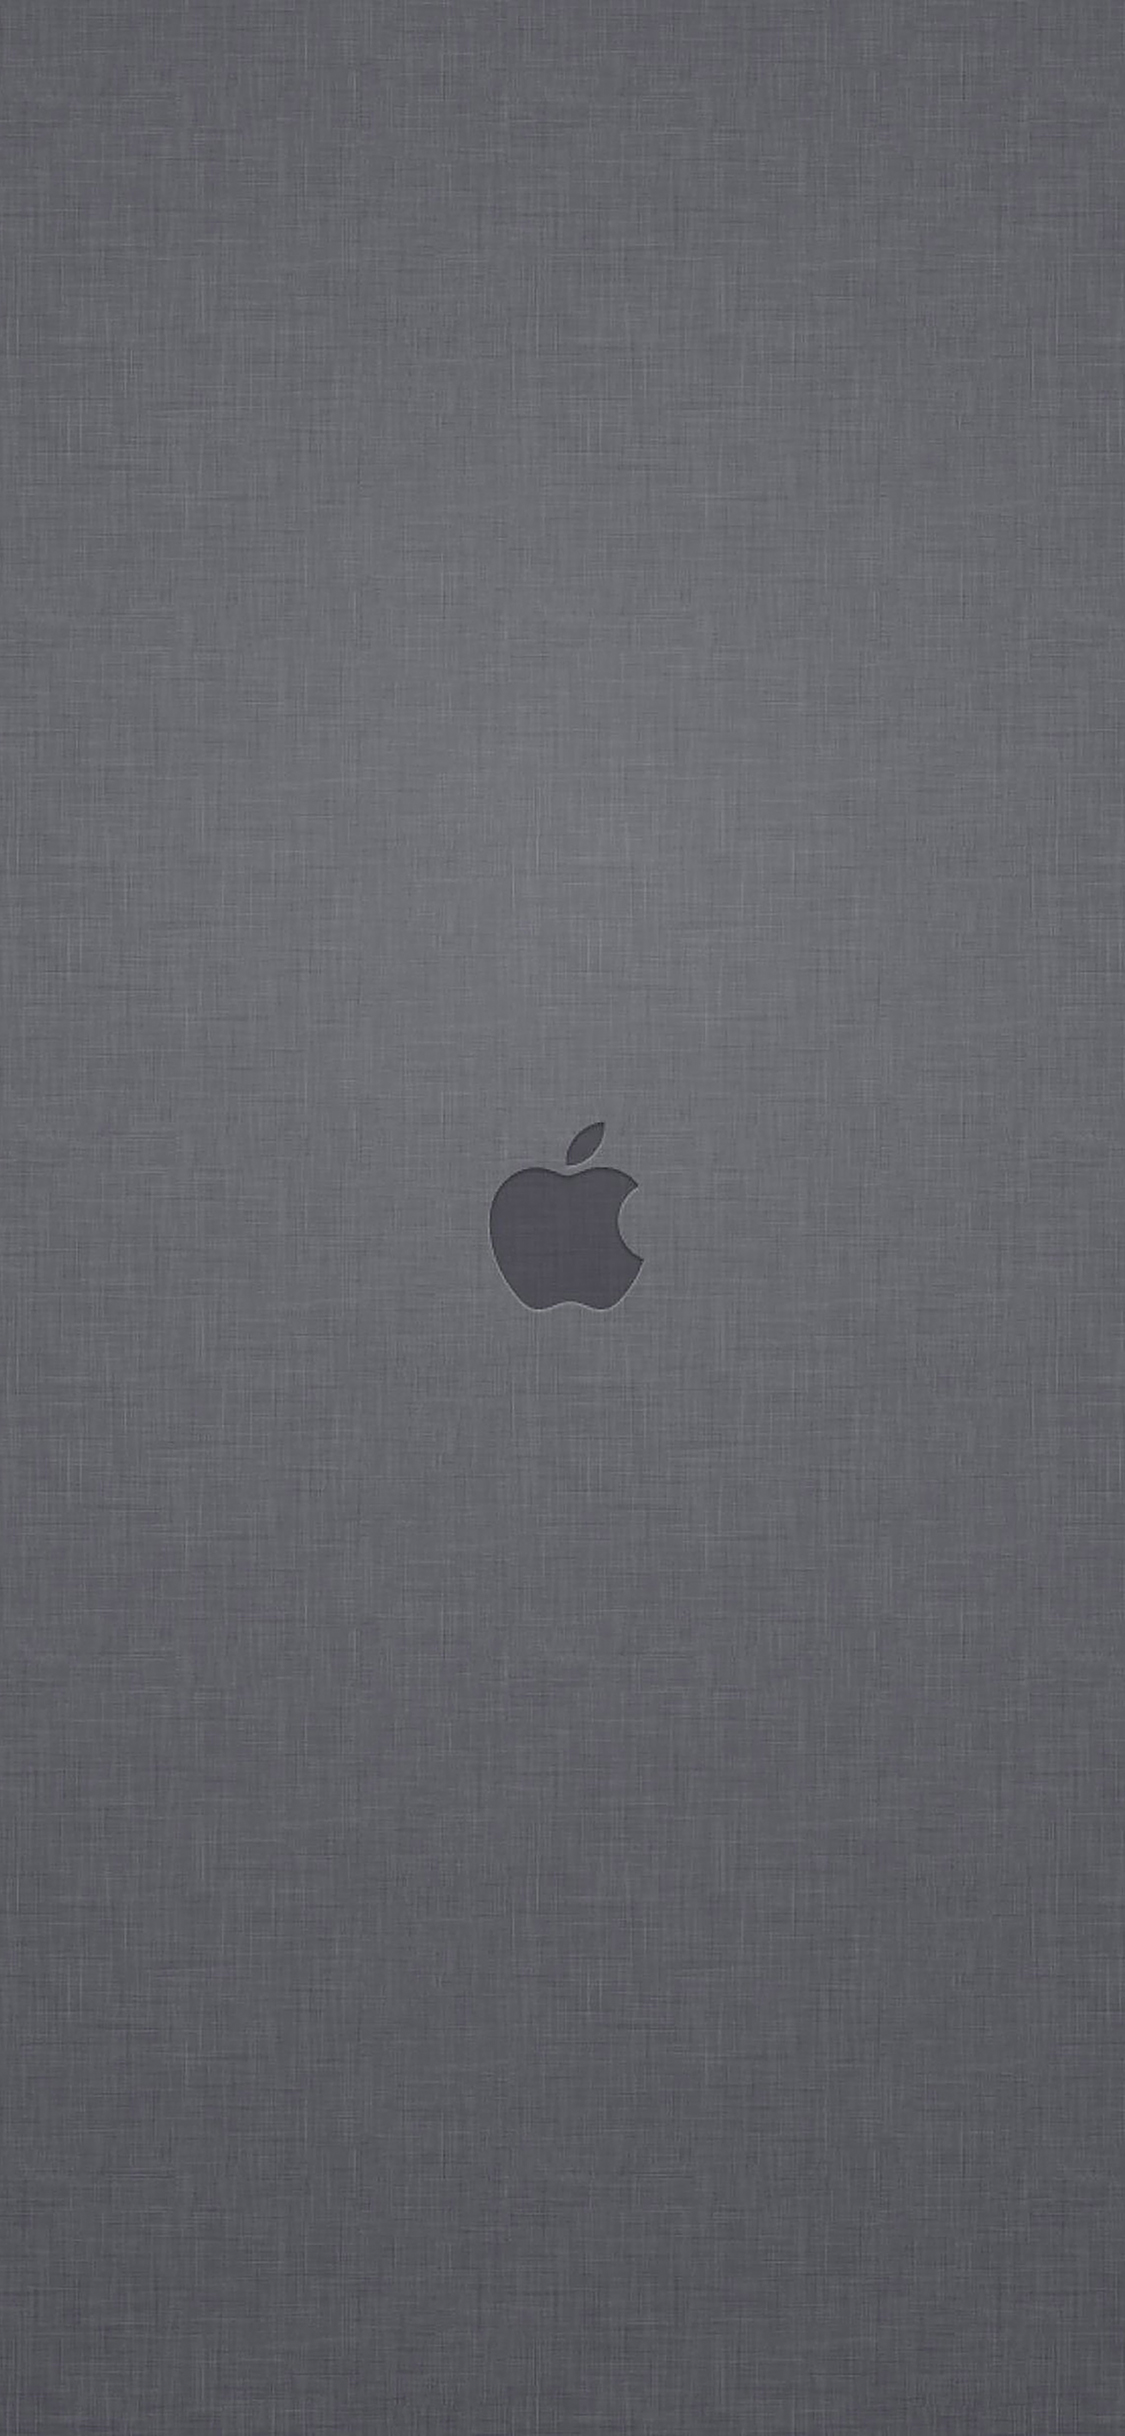 Iphone11papers Com Iphone11 Wallpaper Ab27 Wallpaper Tiny Apple Logo